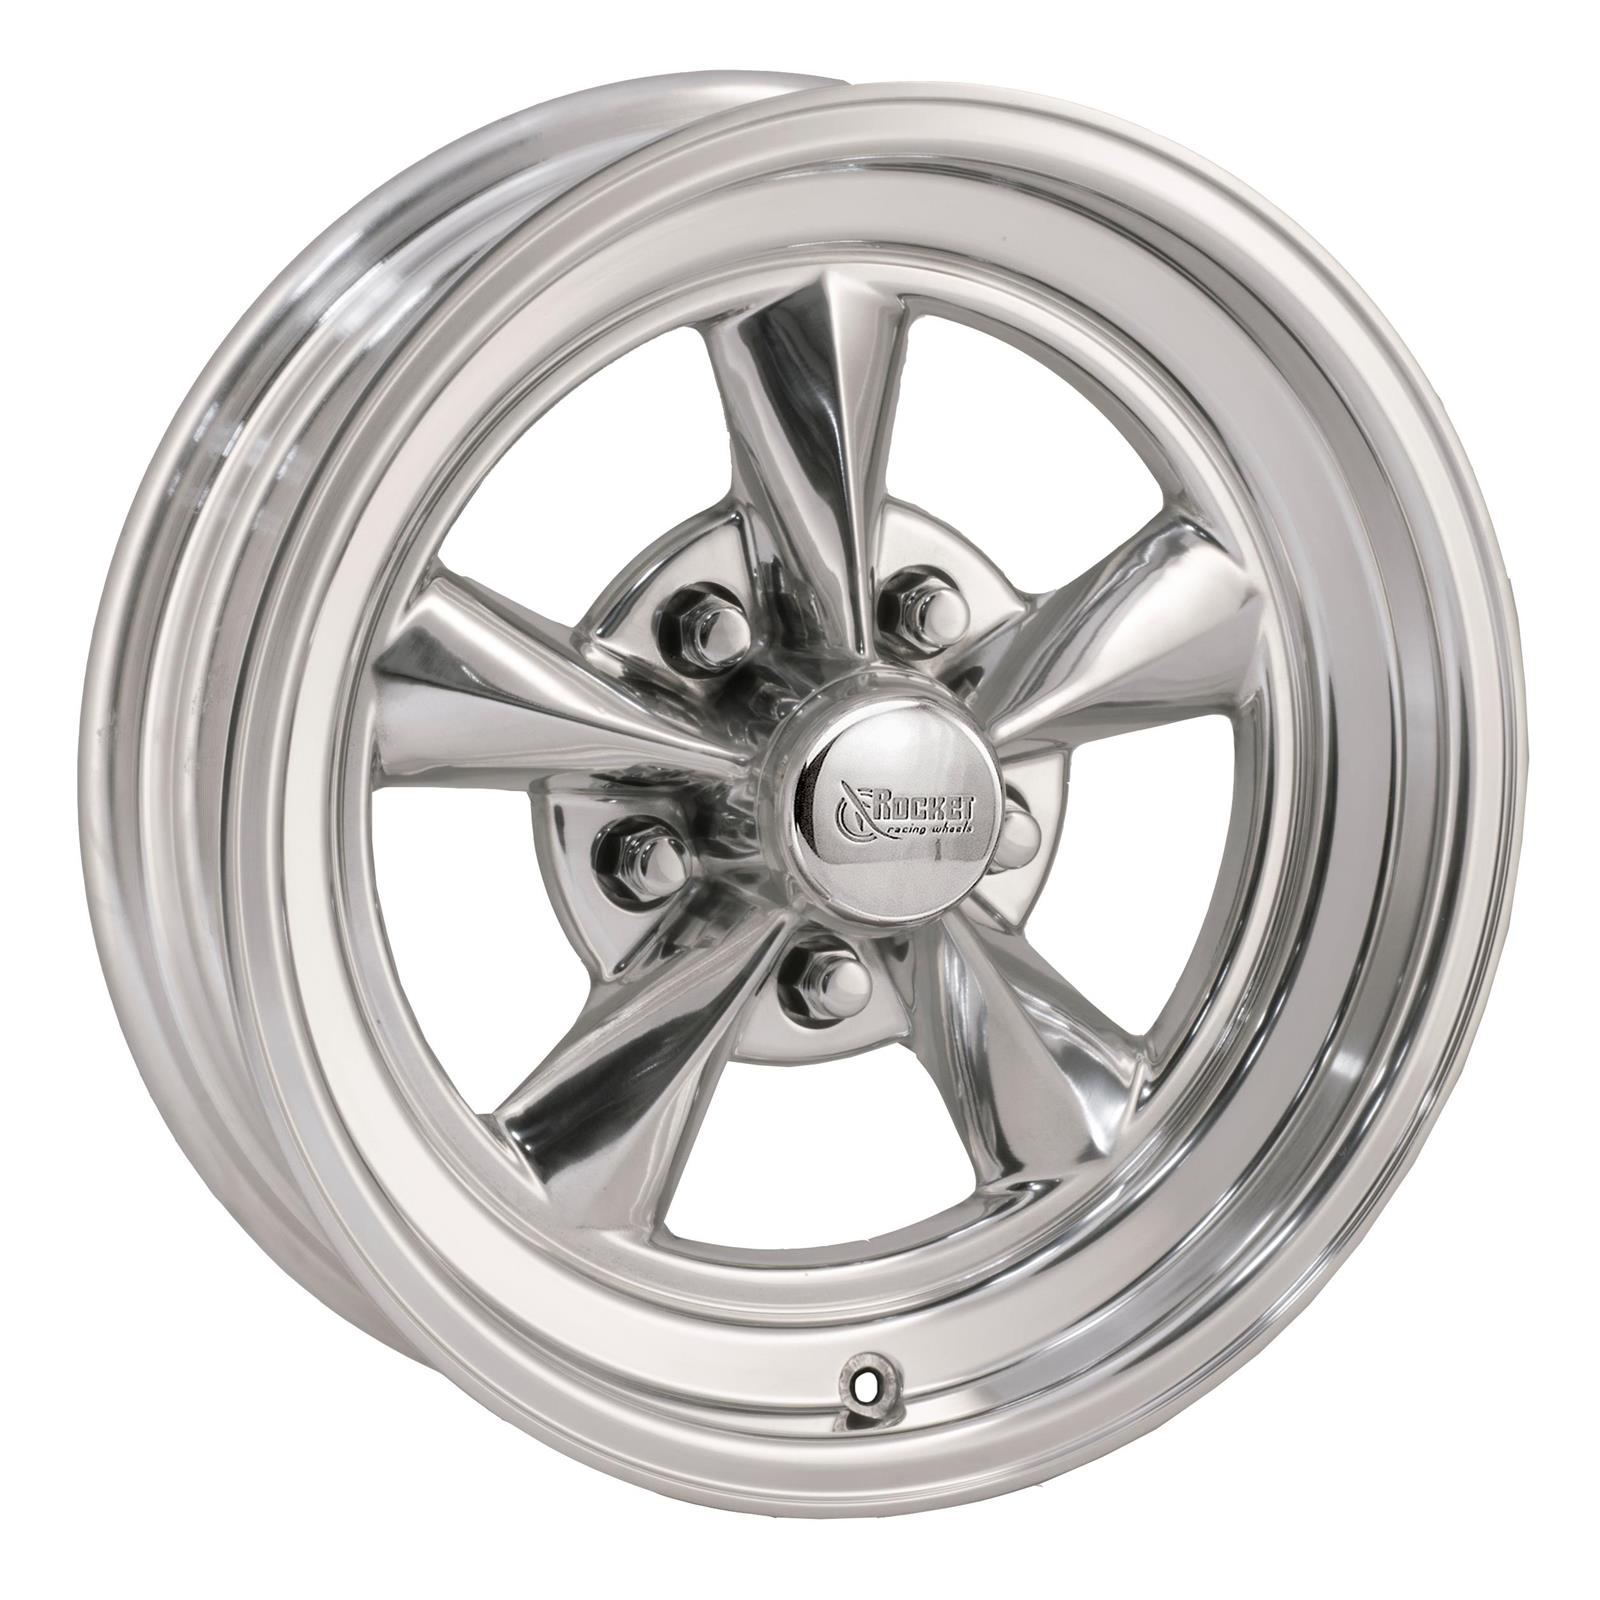 Classic Truck Wheels and Accessories - Free Shipping @ Speedway Motors